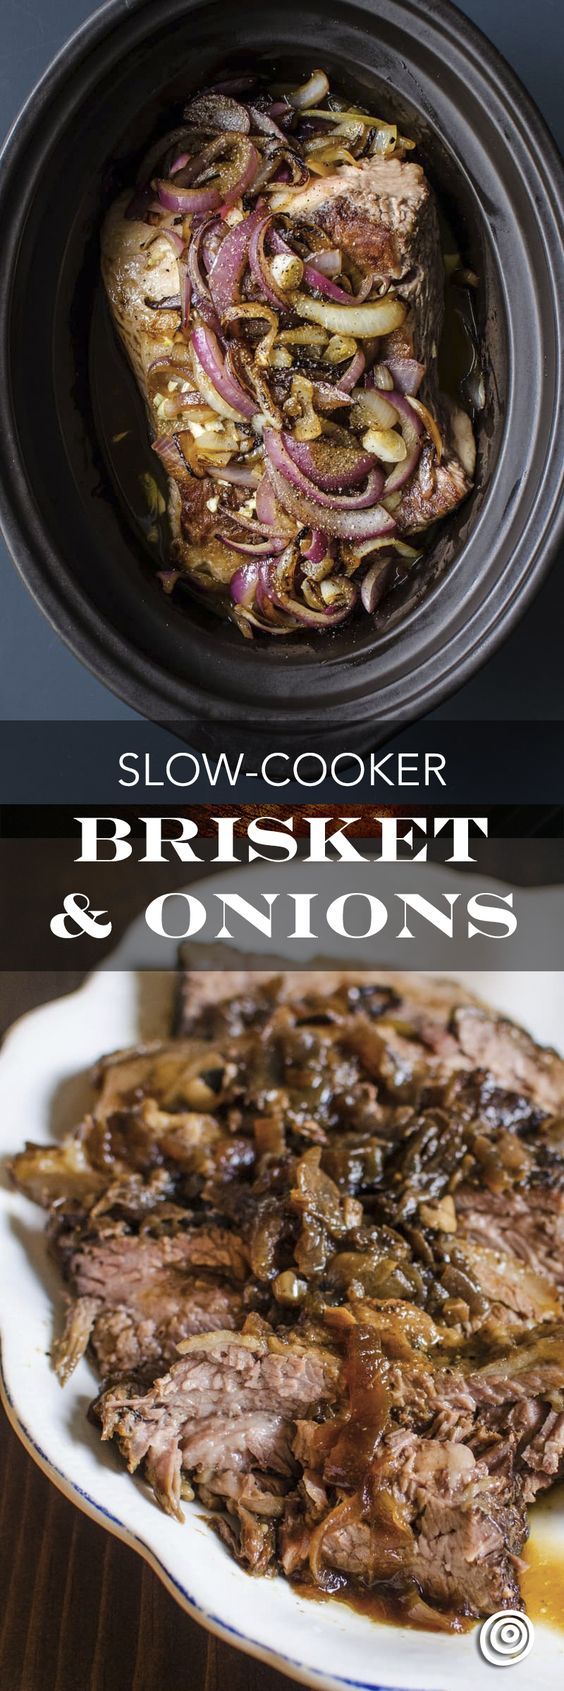 Slow Cooker Brisket and Onions Recipe. This EASY and SIMPLE comforting ...